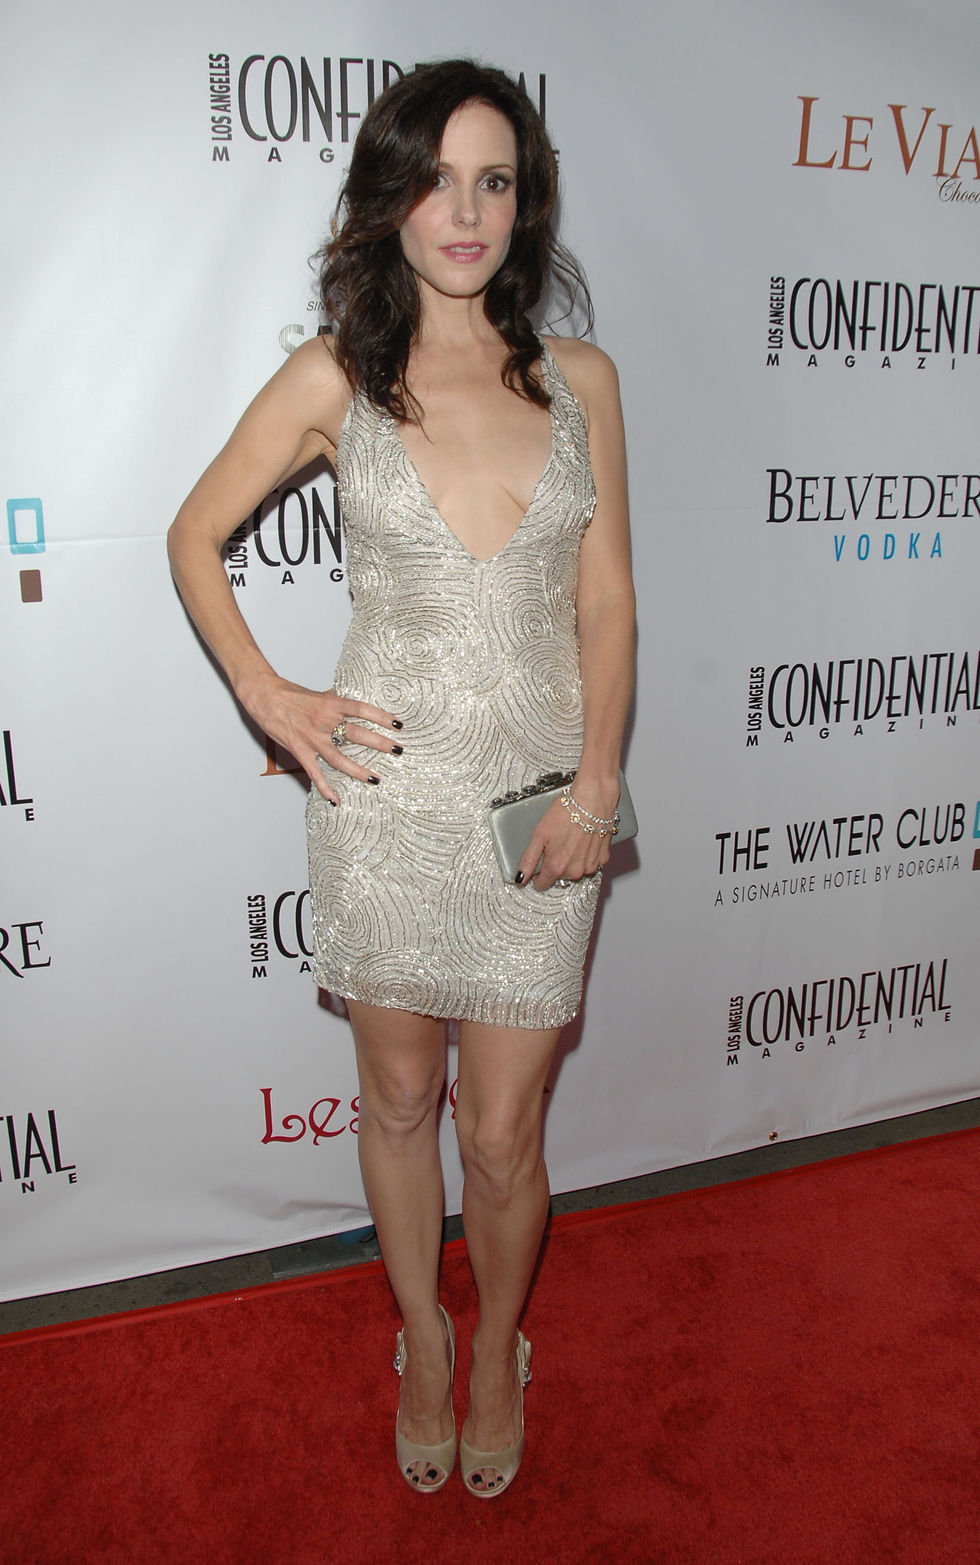 mary-louise-parker-los-angeles-confidential-magazines-pre-emmy-party-in-los-angeles-01